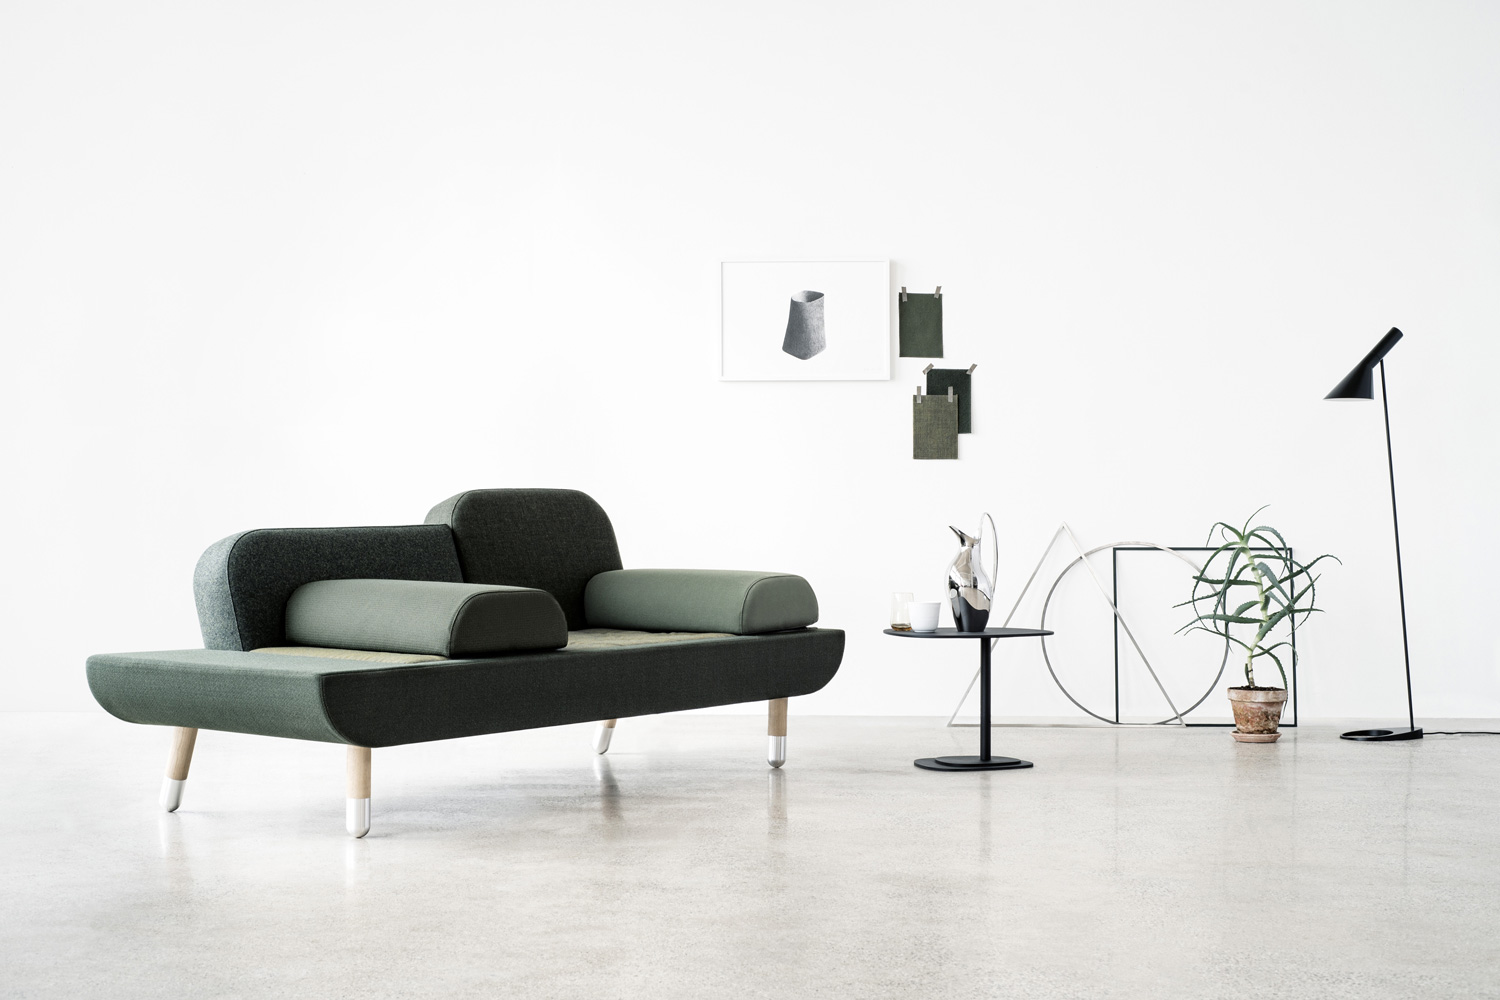 Toward Sofa by Erik Jorgensen | Yellowtrace